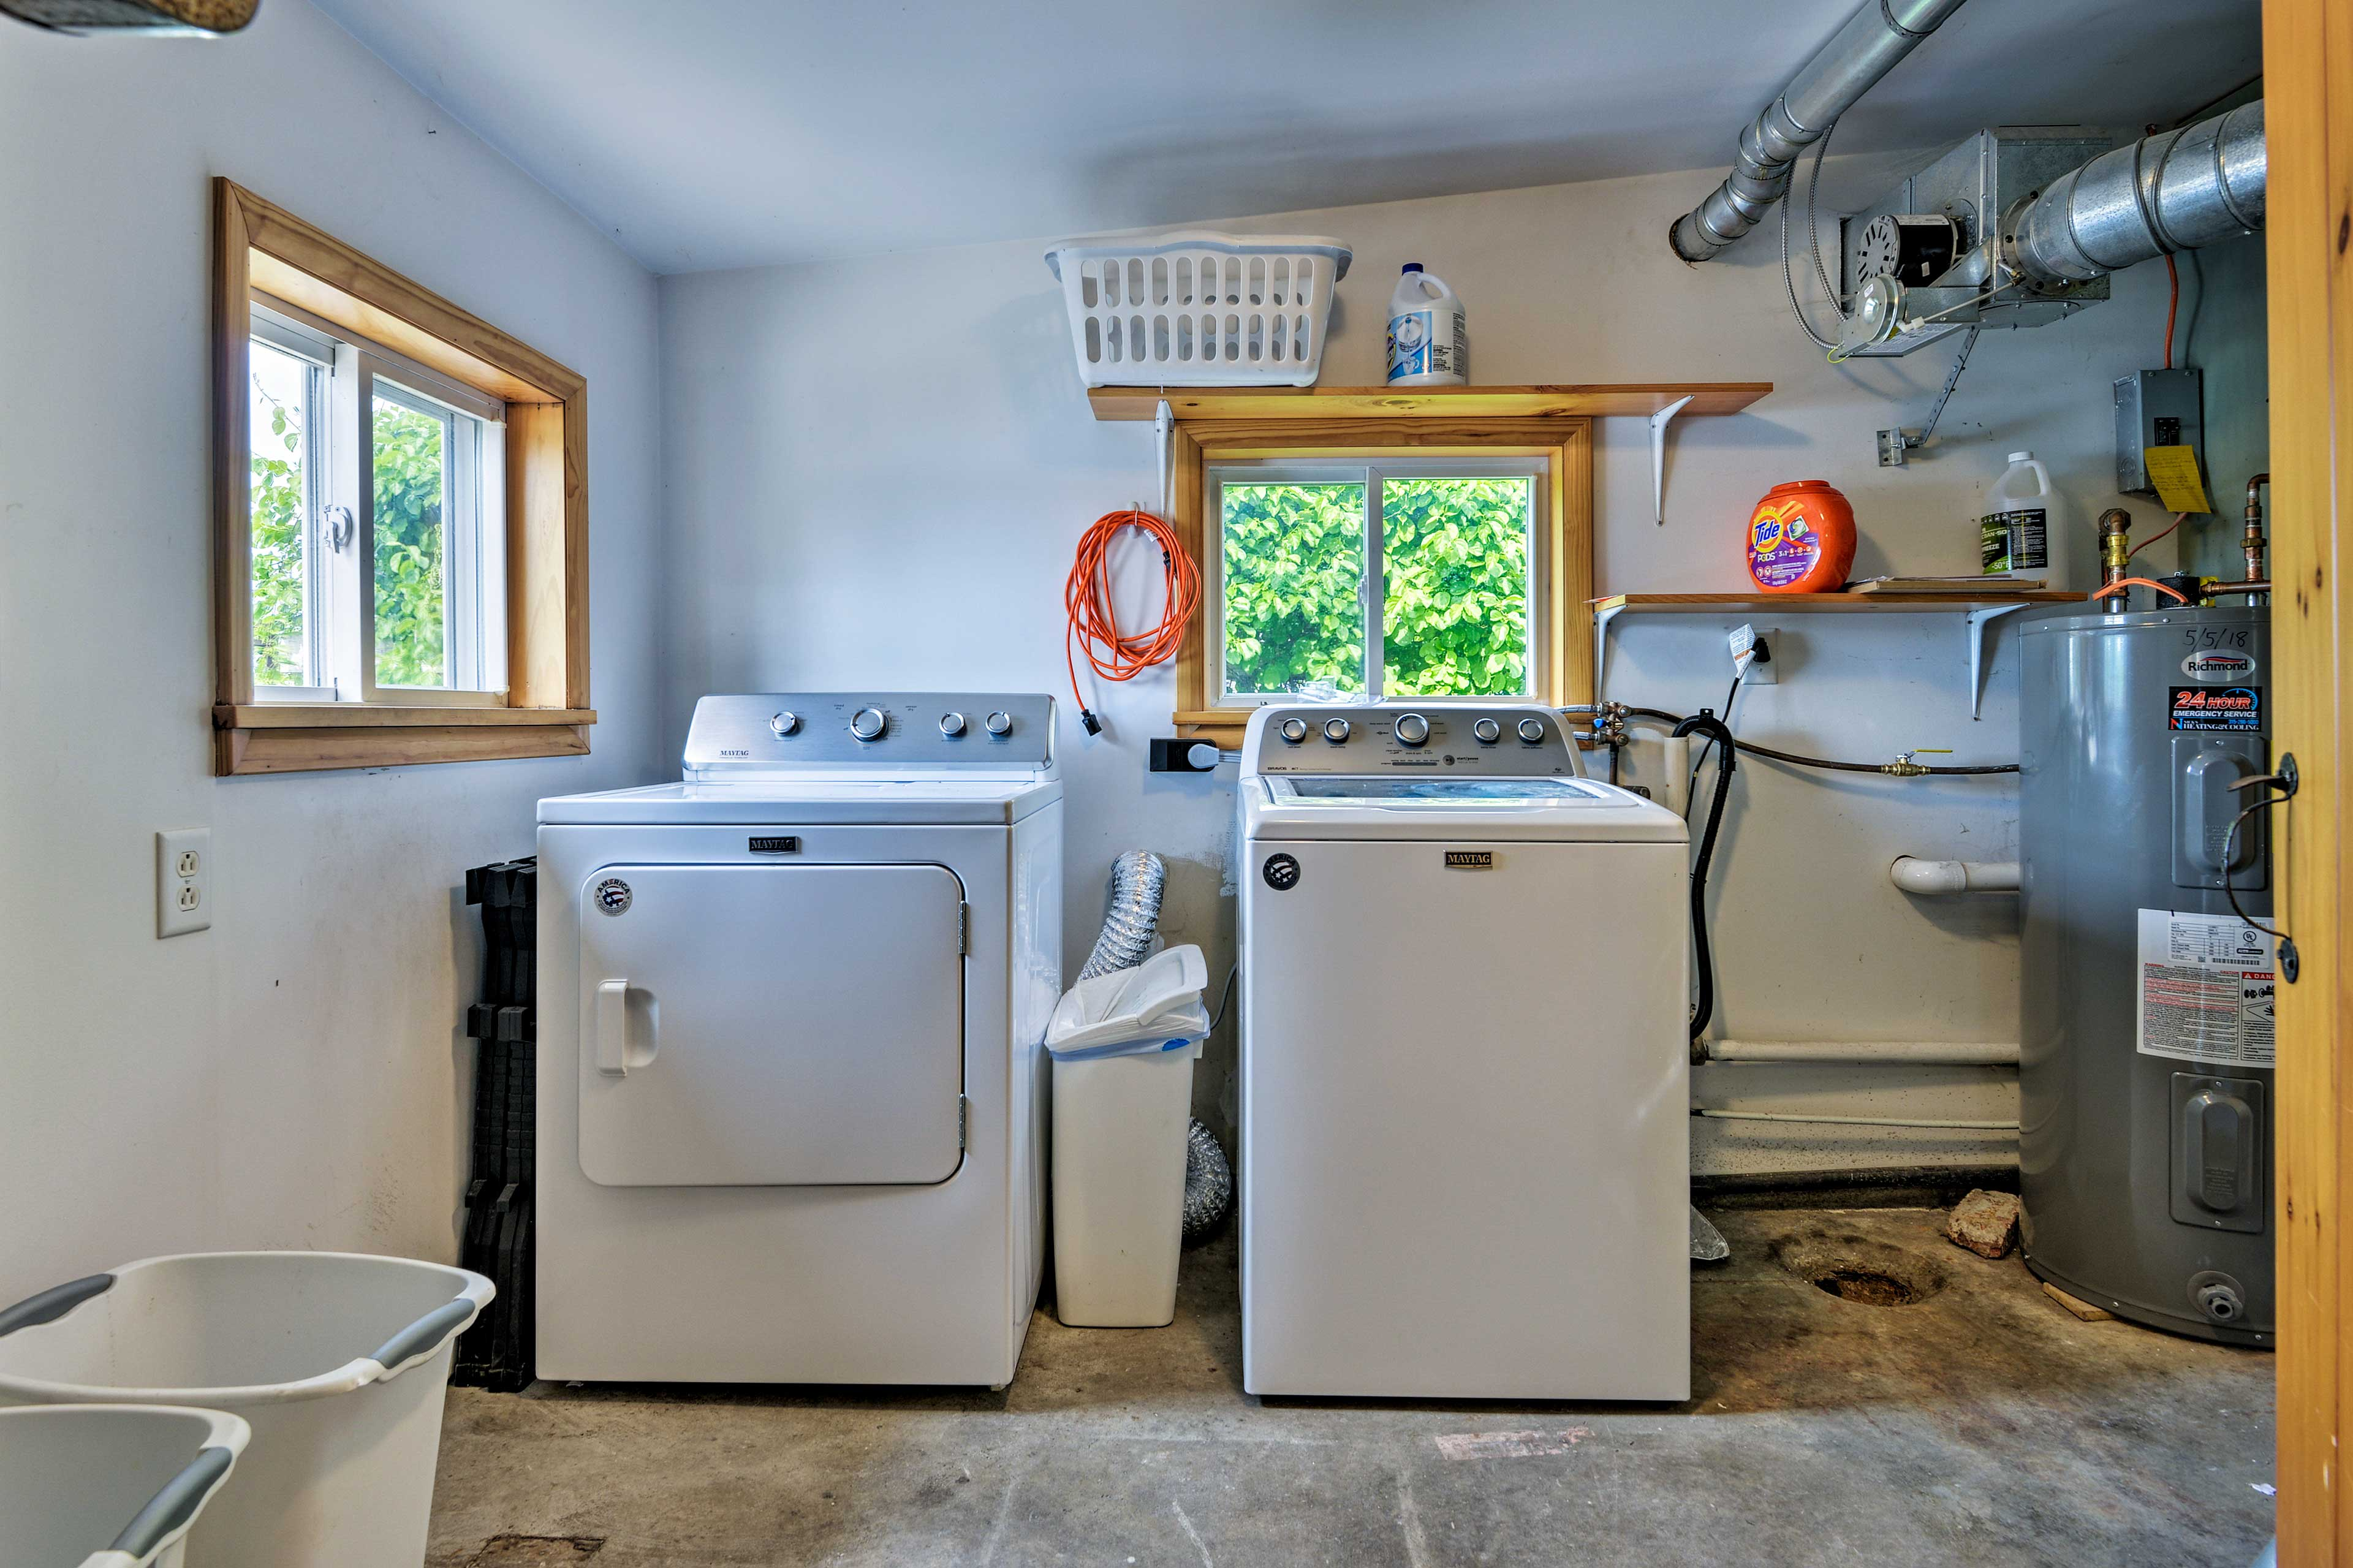 Use the washing machine to keep your clothes nice and clean.